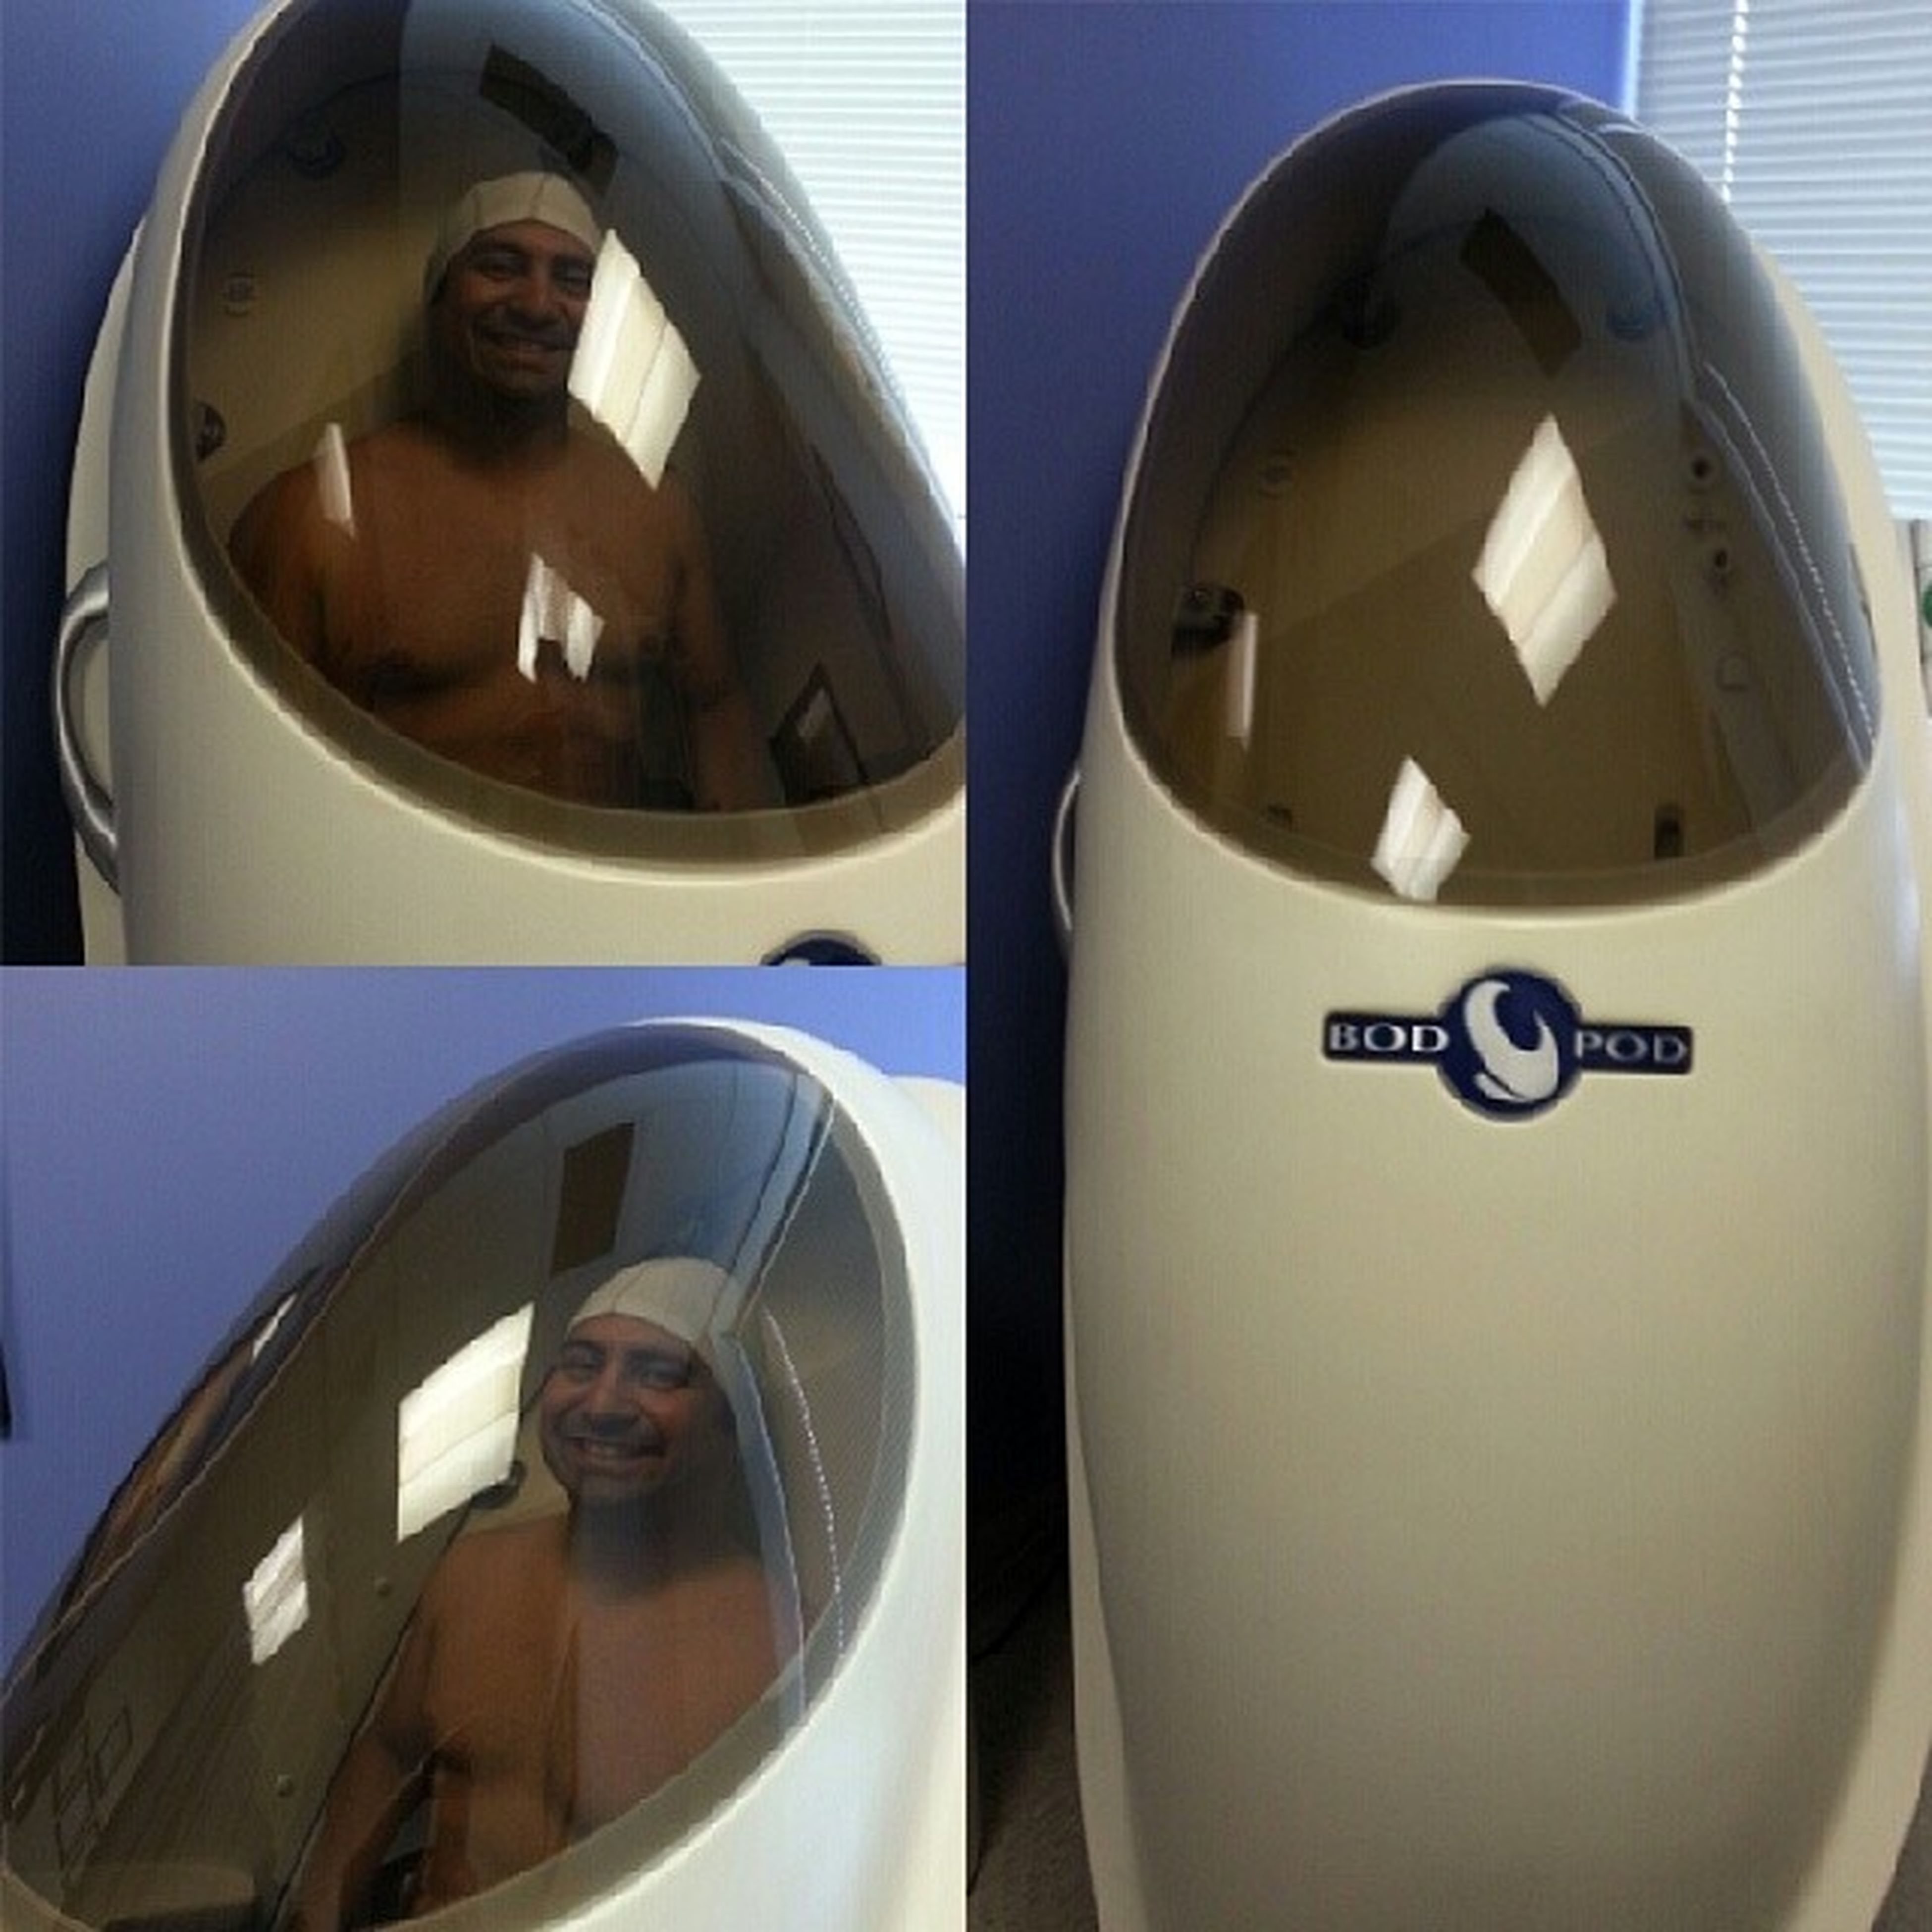 Spacetraining ? No, in a BOD  Pod getting Bodyfat measurements! They said I was too chicken to do it! Now I know what to work on! Just so happens I've been going over the 4hourbody again by timferris seanknows health